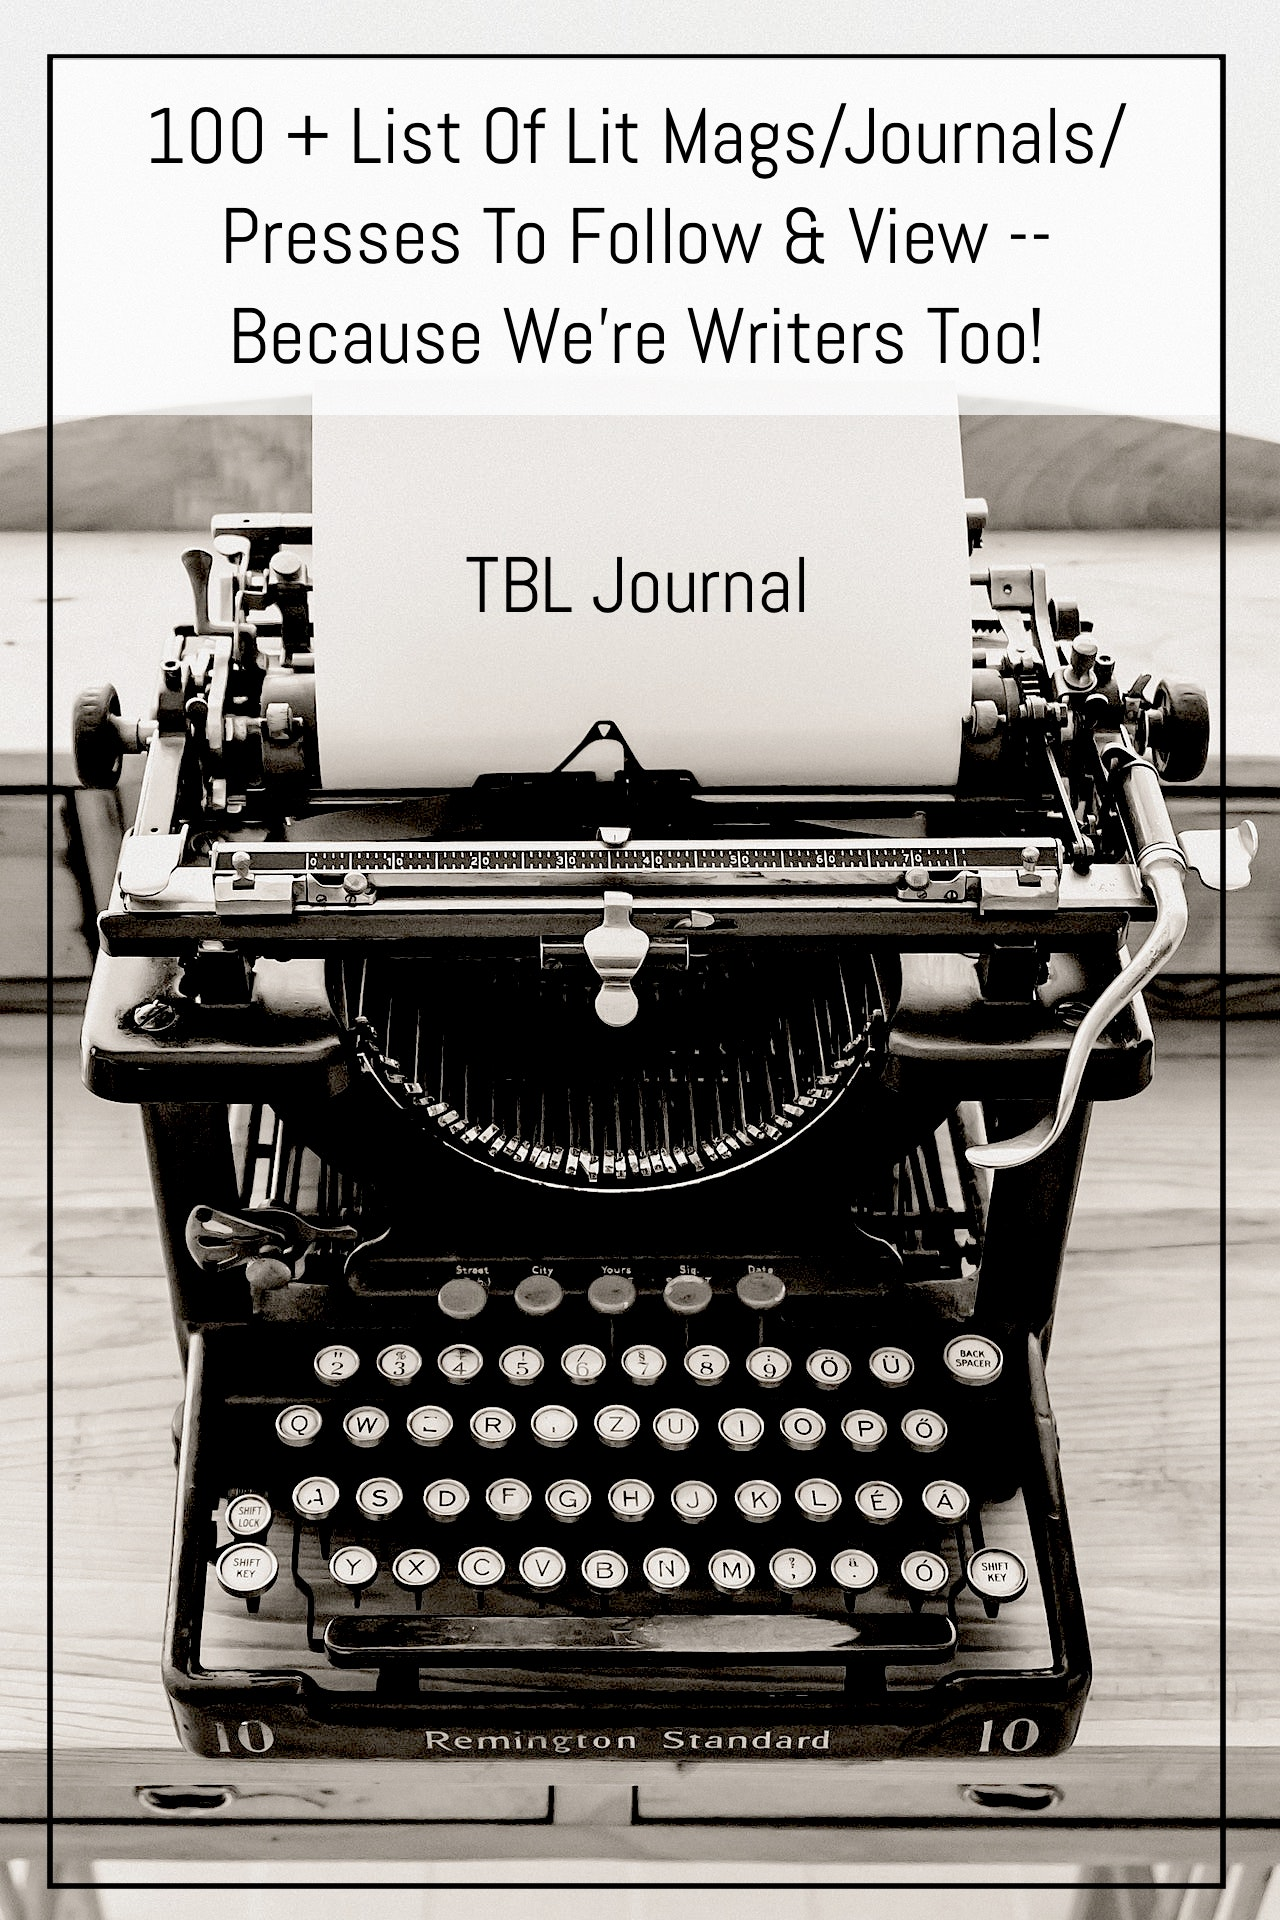 100 + List Of Lit Mags/Journals/Presses To Follow & View -- Because We're Writers Too!   Black Lion Journal